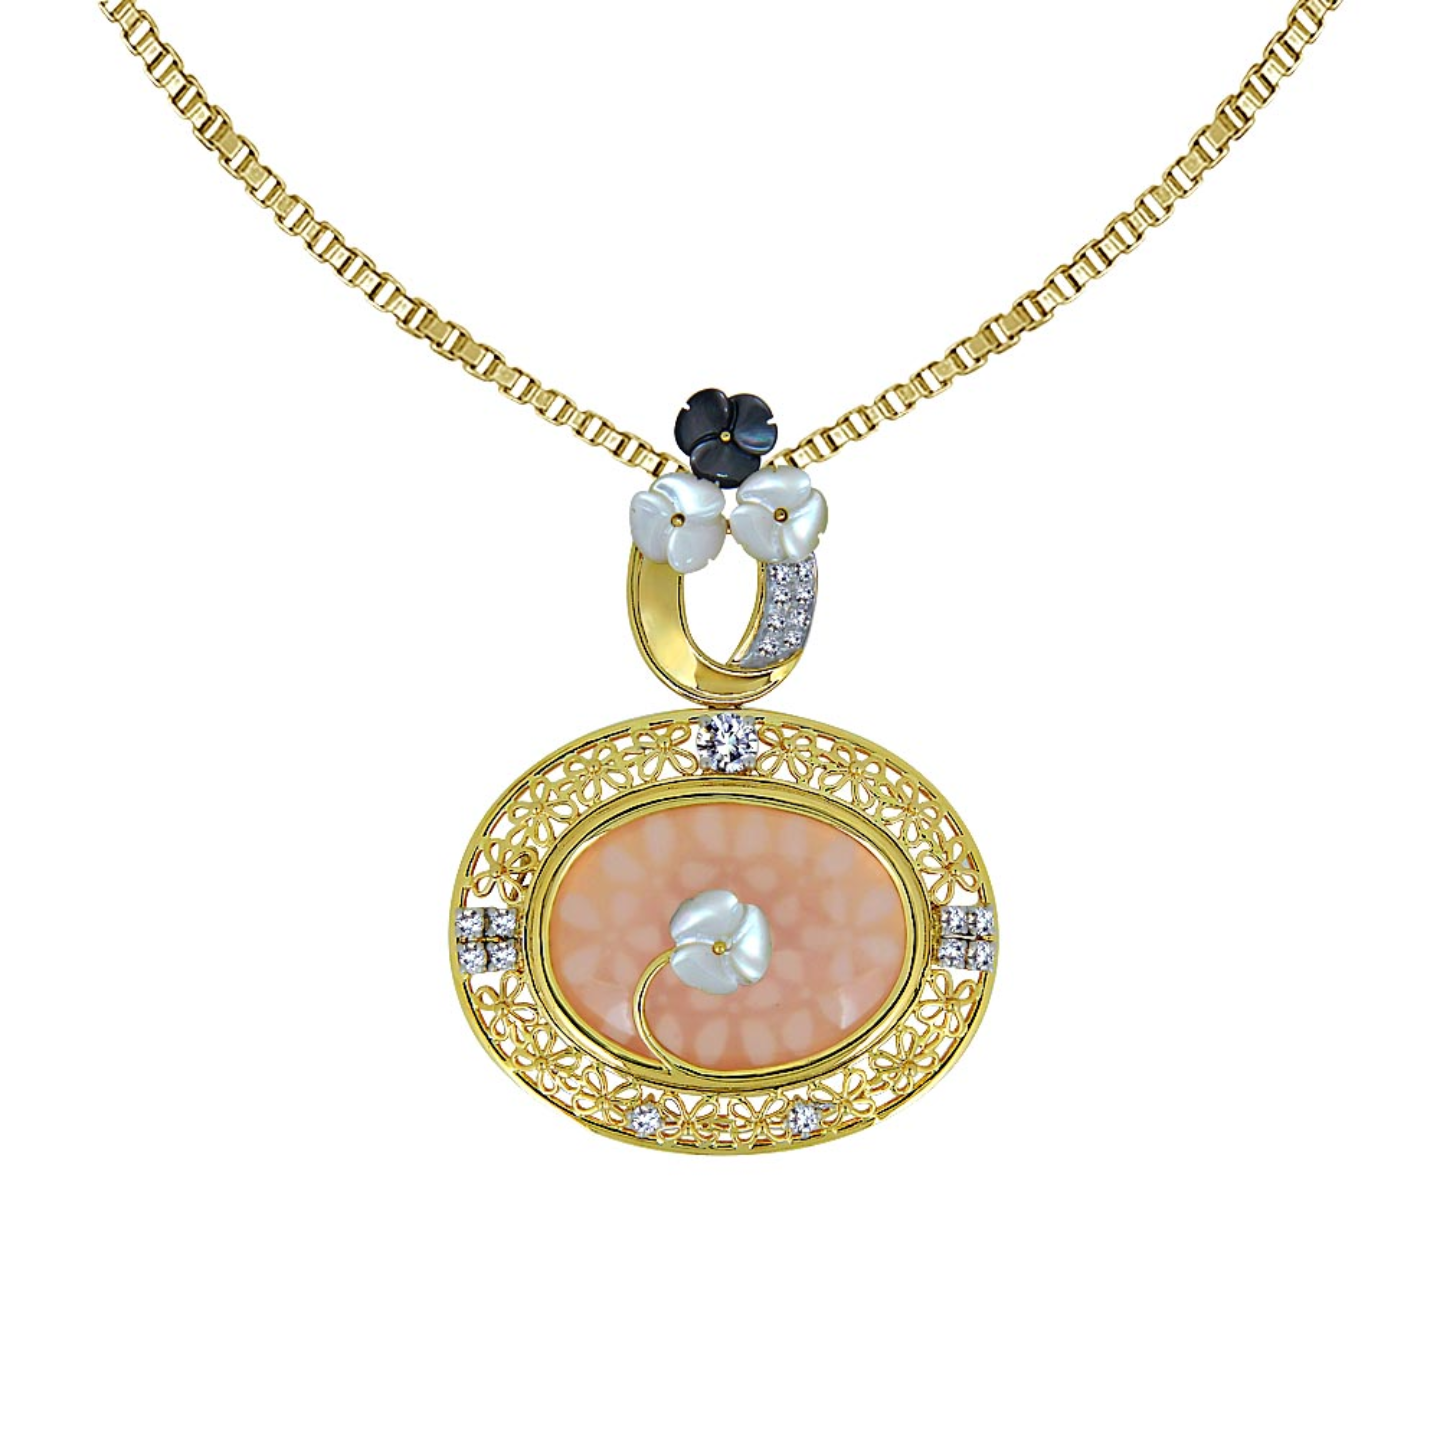 Gold floral filigree pendant with diamonds and mother of pearl flowers, with changeable centre gem